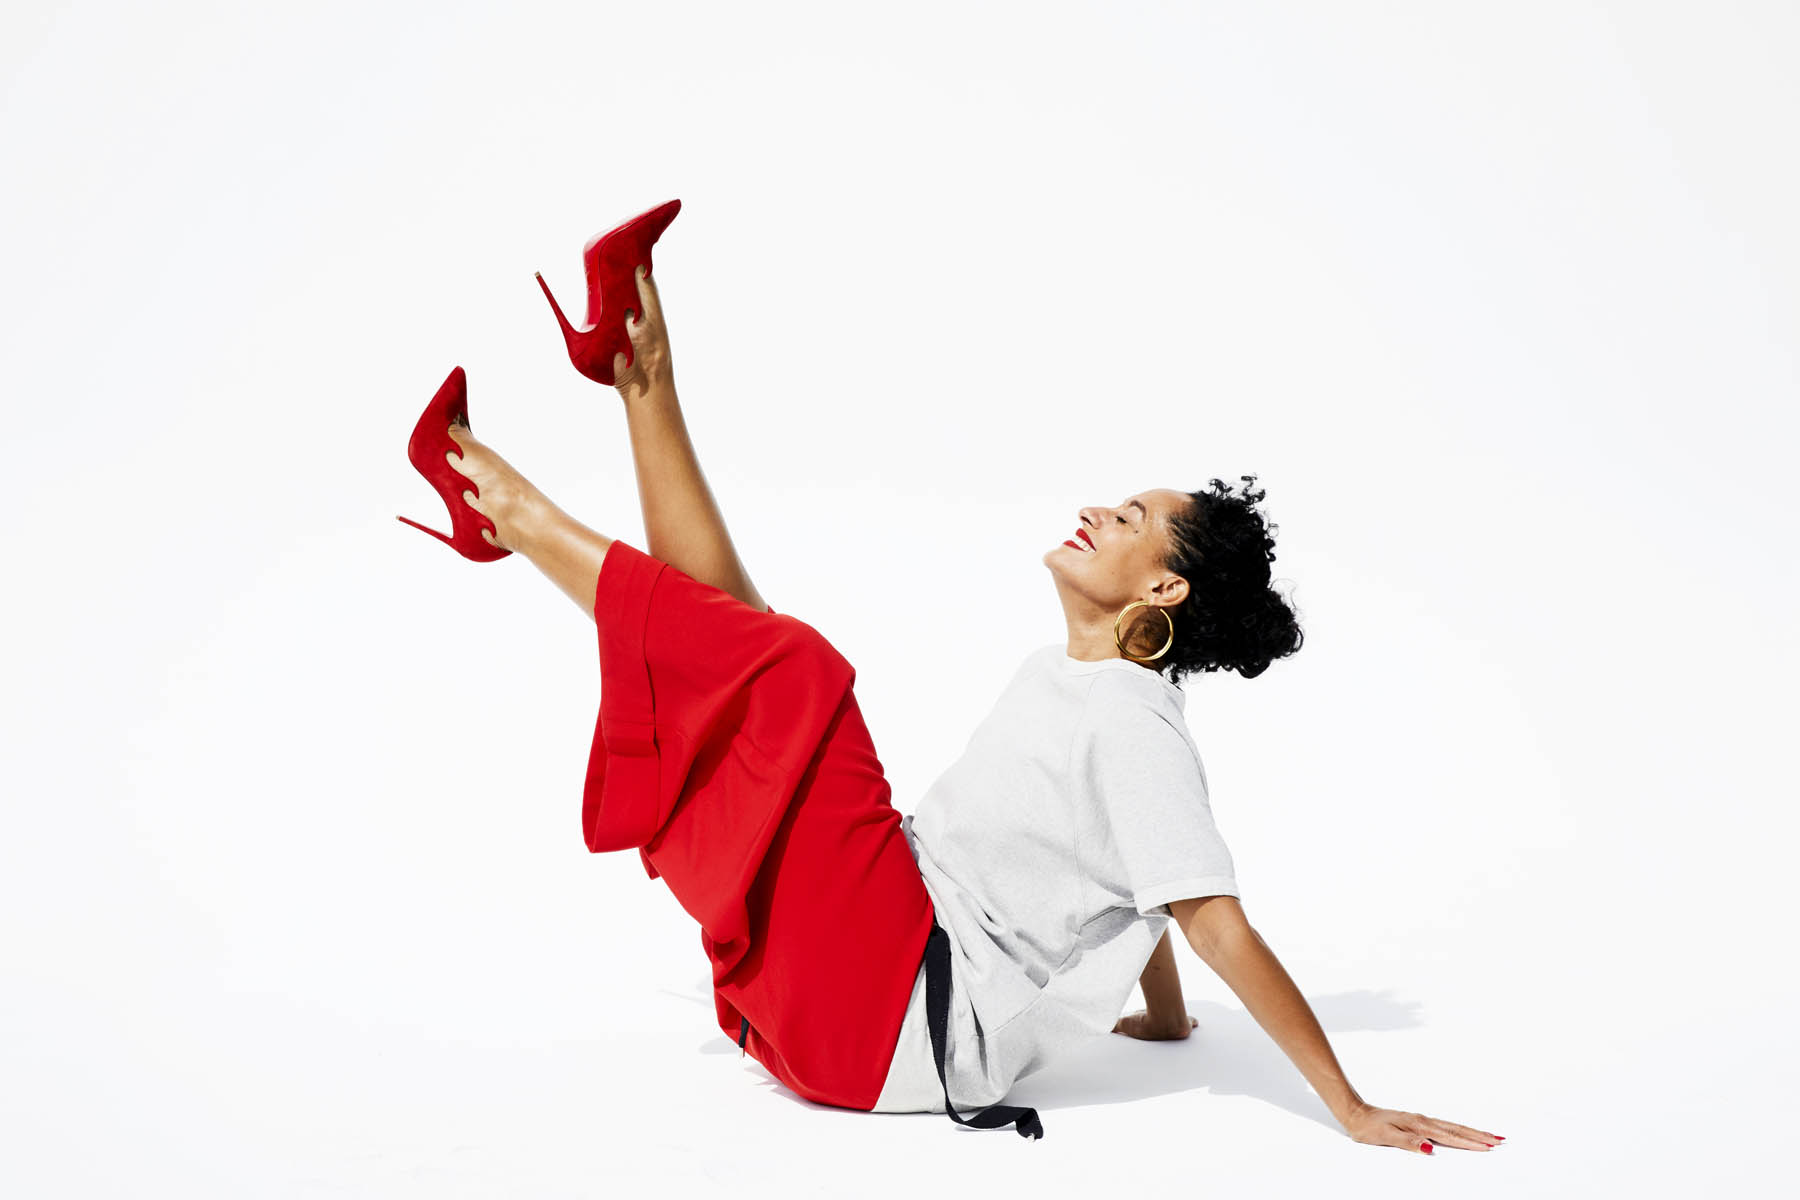 Tracee Ellis Ross for The WrapPhoto by Matt Sayles@msayleswww.mattsaylesphoto.com